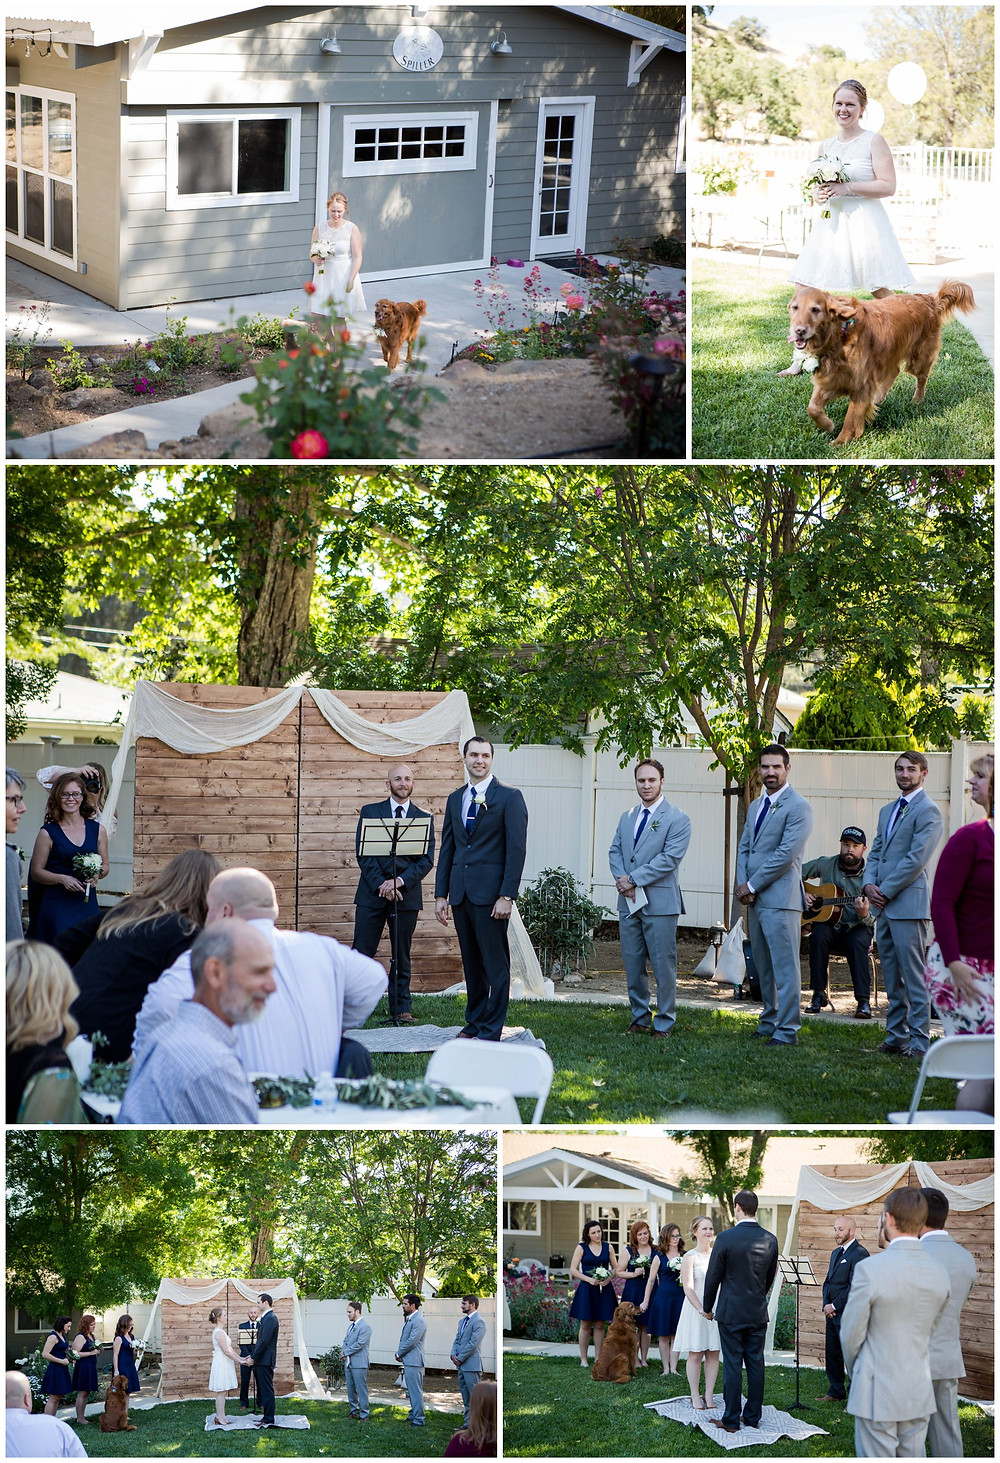 Surprise Wedding | Atascadero Wedding Photographer |The Ceremony